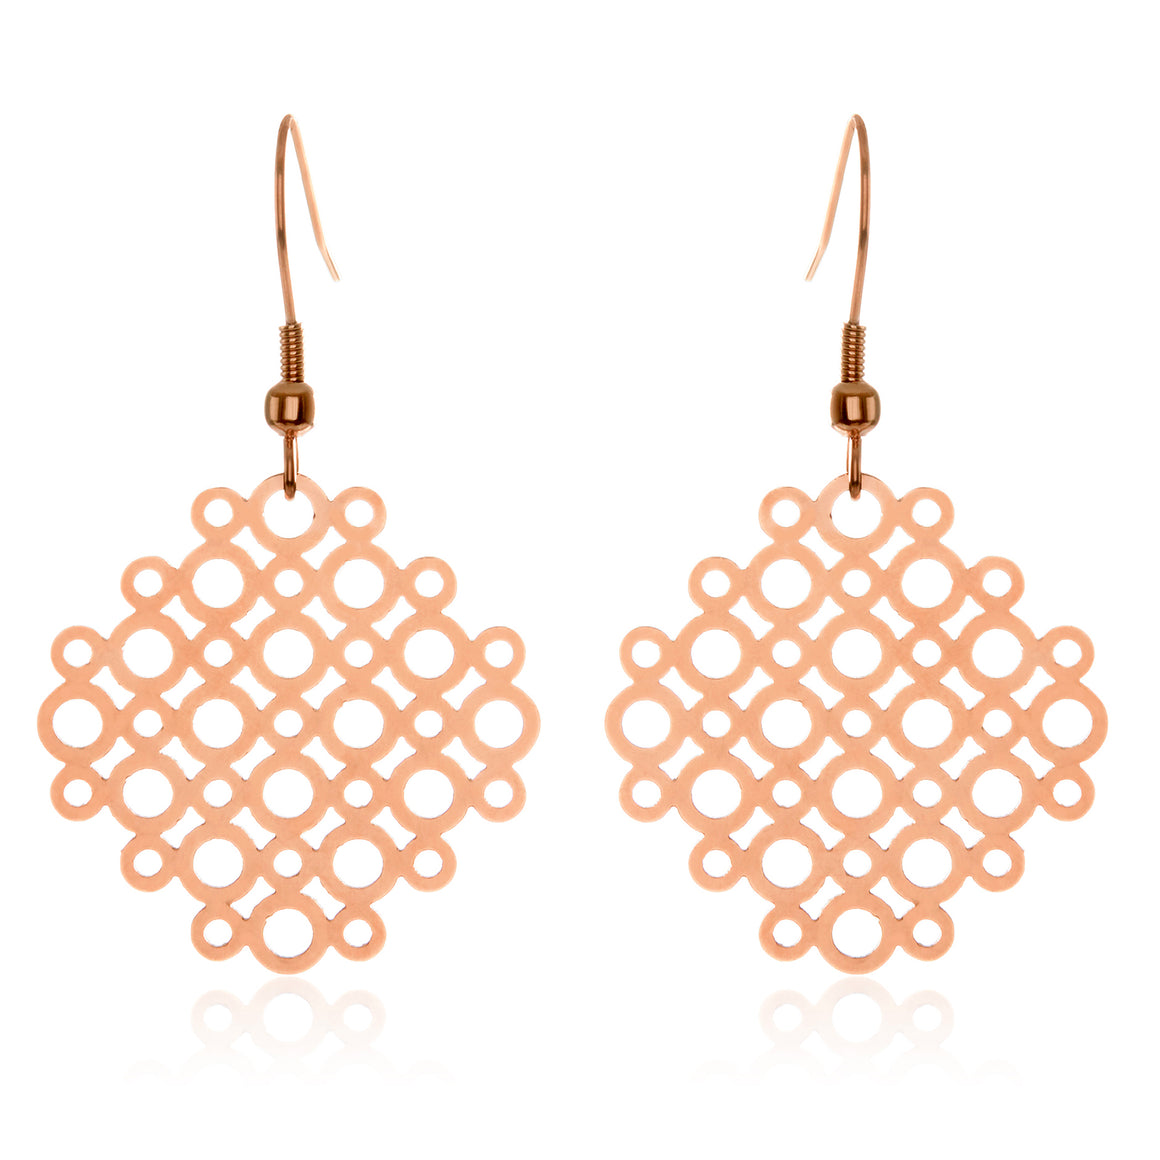 ELYA Women's Rose Gold Plated Geometric Circle Stainless Steel Dangle Earrings